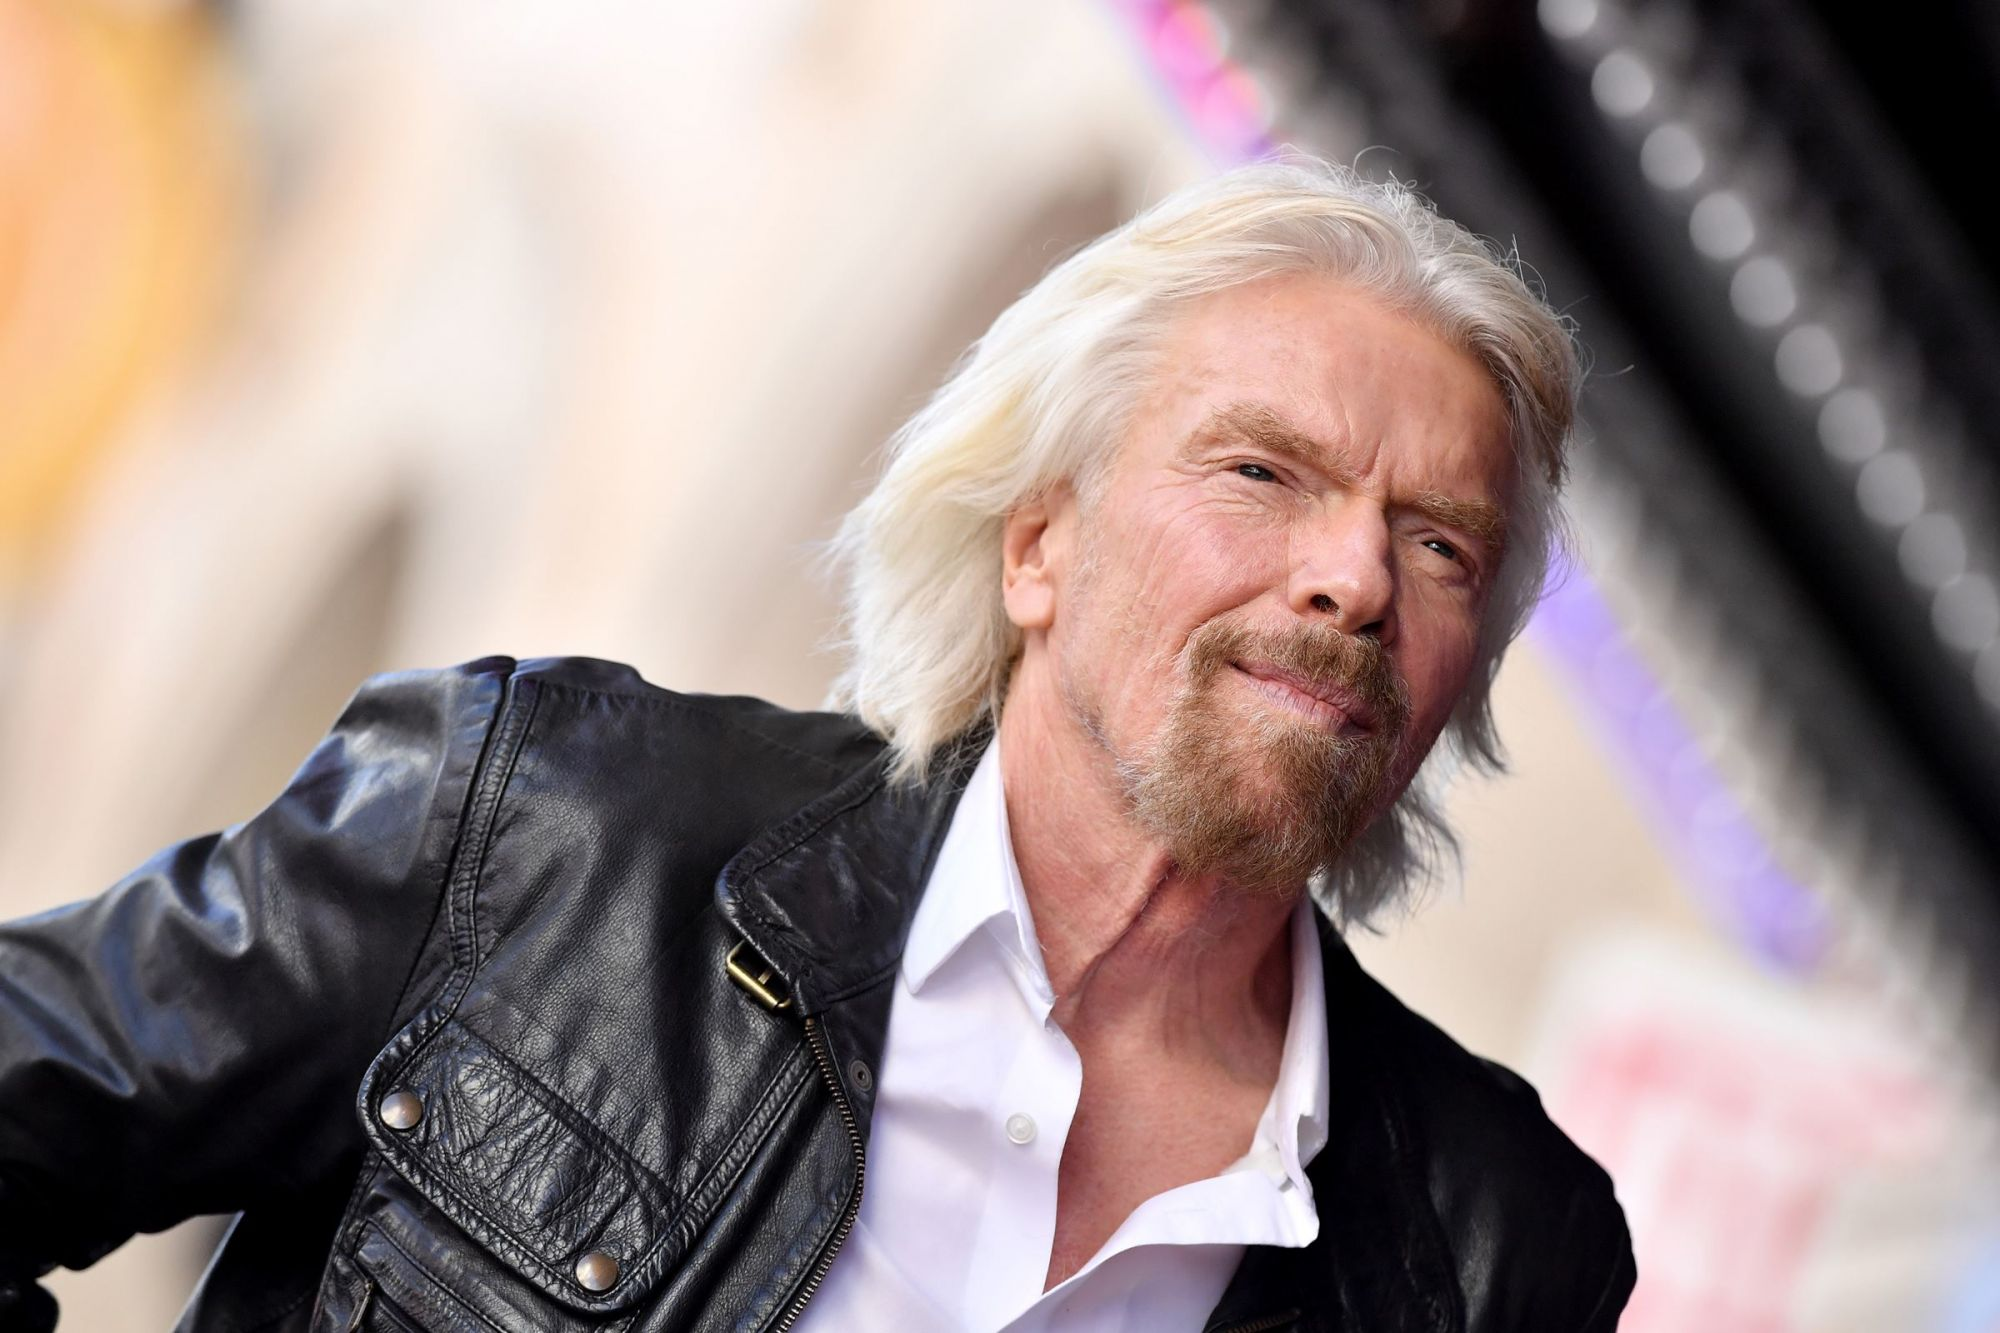 Richard Branson's 8 Keys Happiness and Success